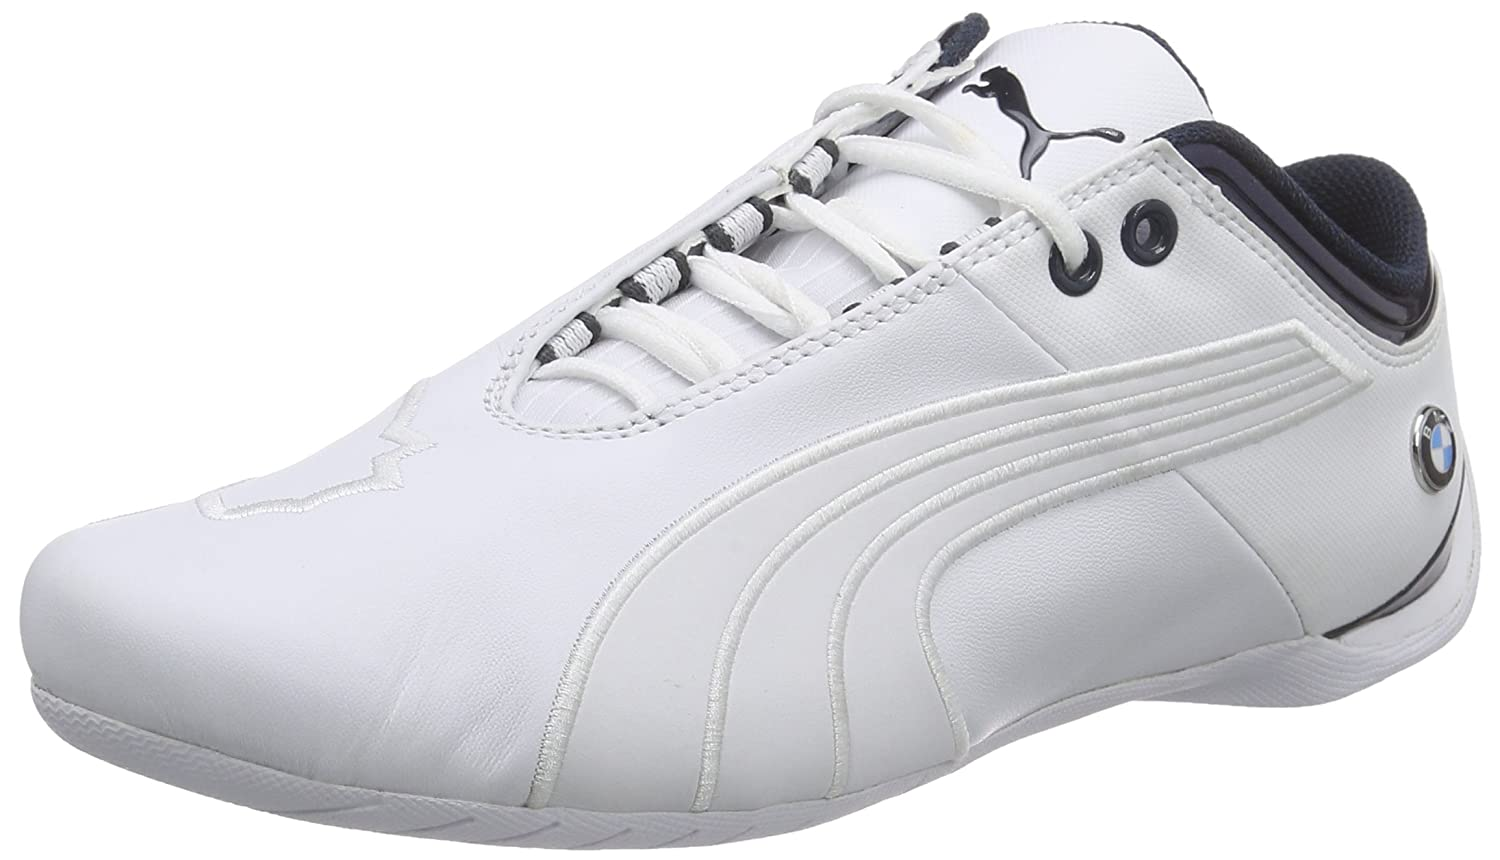 610ce6df785 Puma Men s BMW Ms Future Cat M1 2 White Leather Safety Shoes - 10 UK India  (44.5 EU)  Buy Online at Low Prices in India - Amazon.in